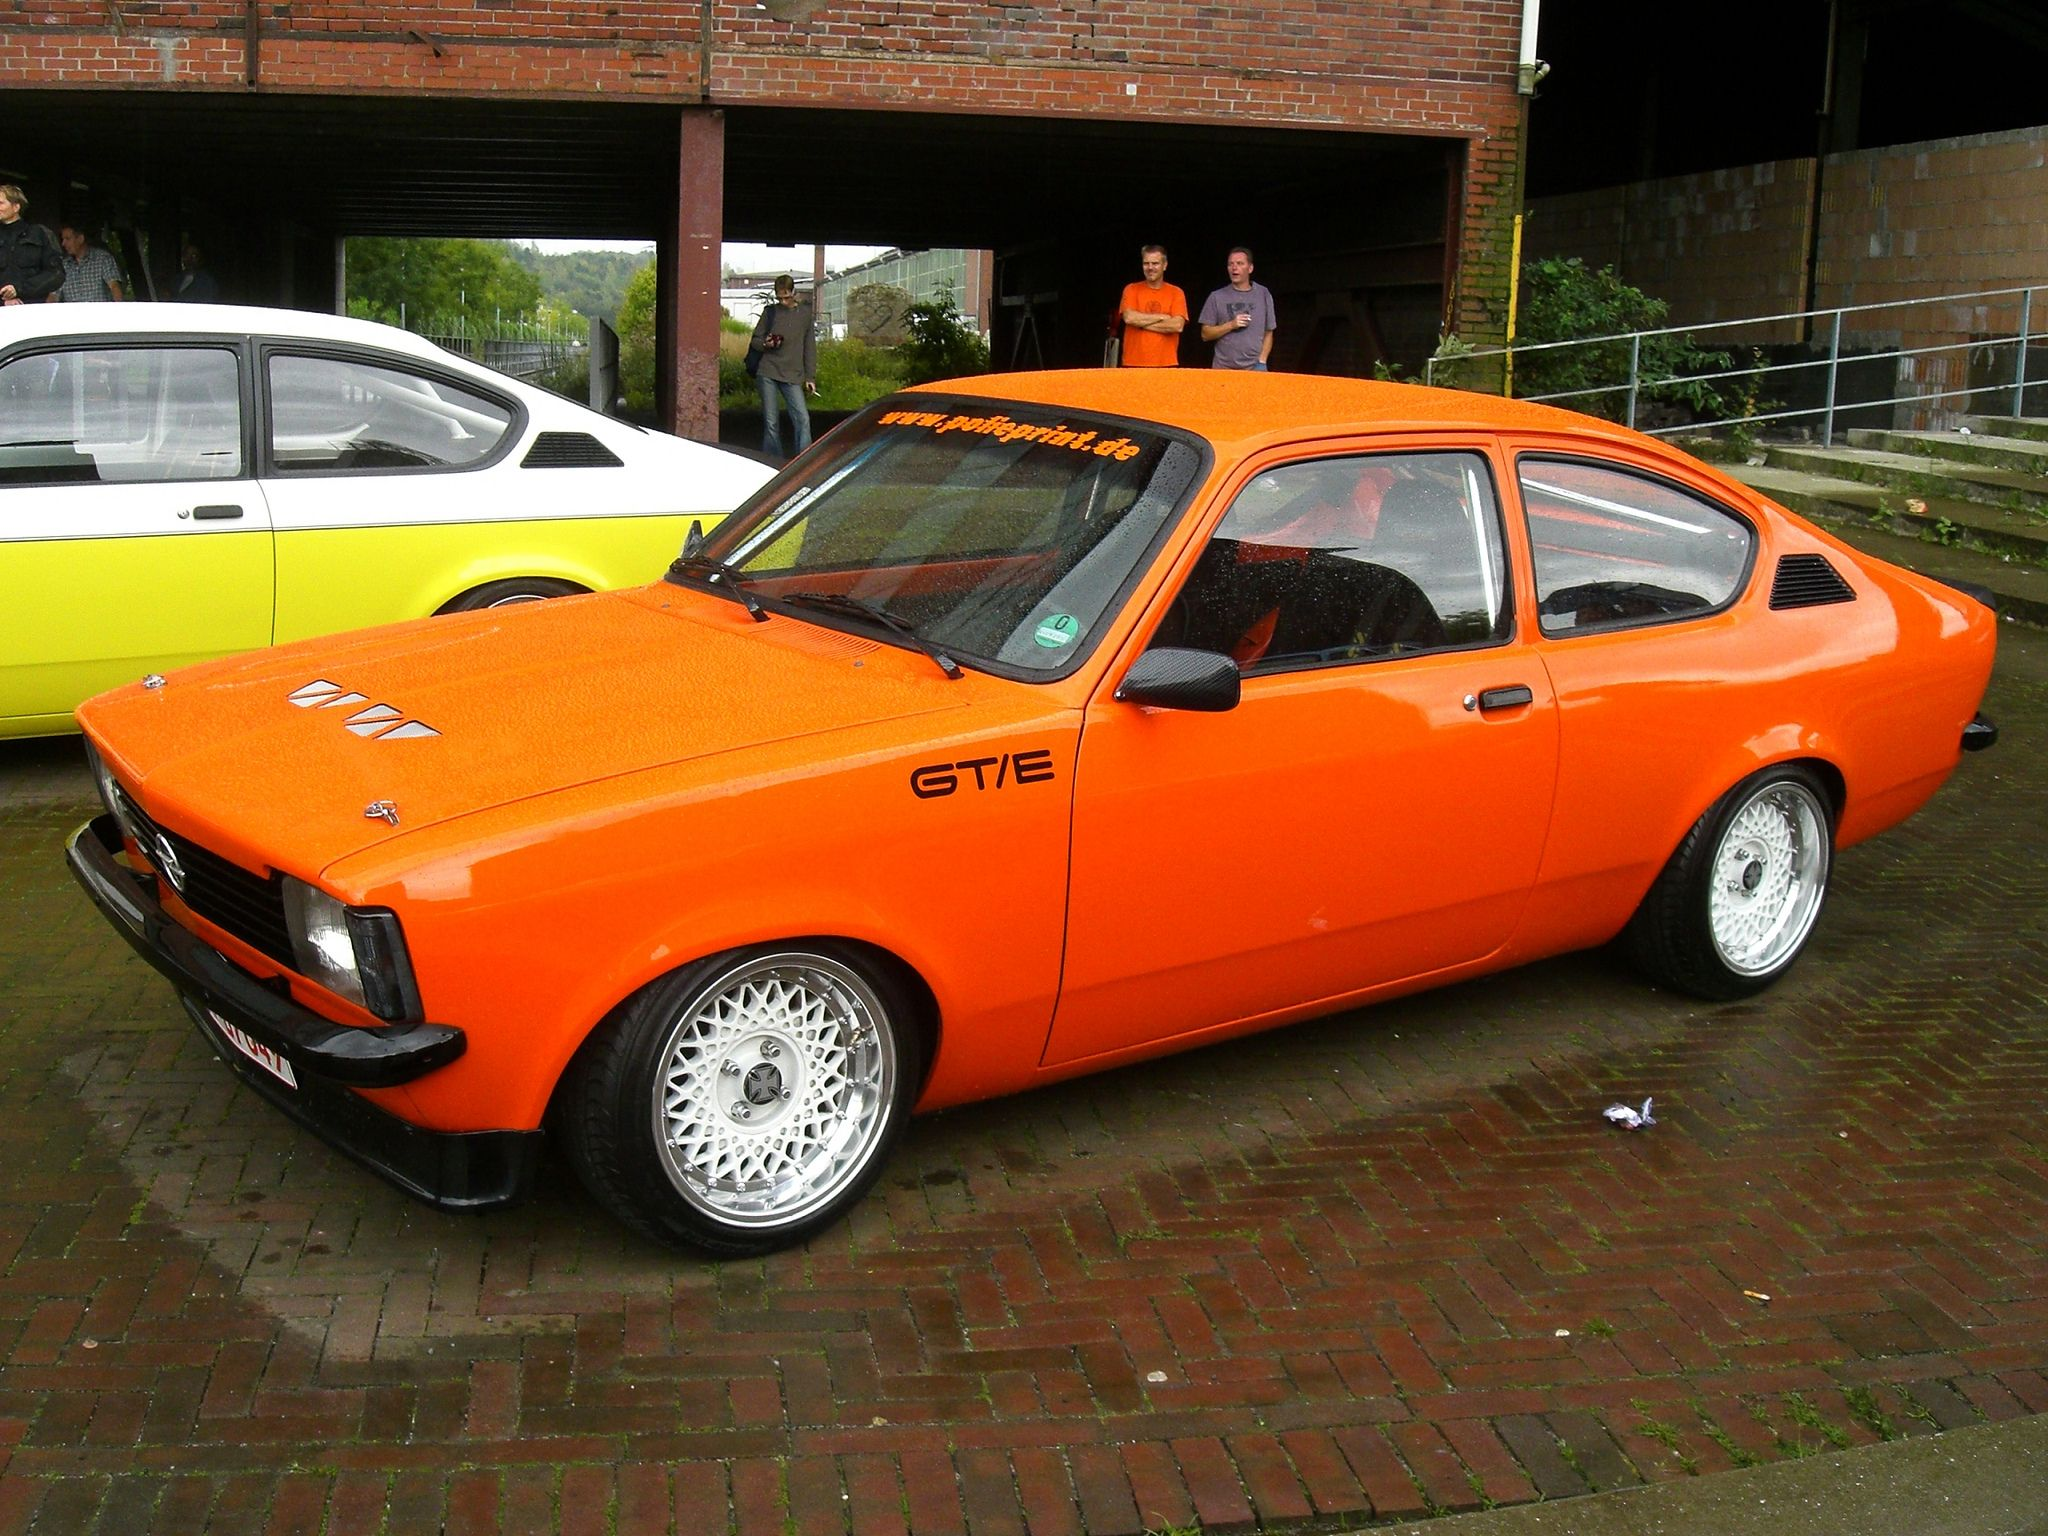 Opel Kadett C Tuning 3 Tuning Opel Kadett C Kadett C Coupe